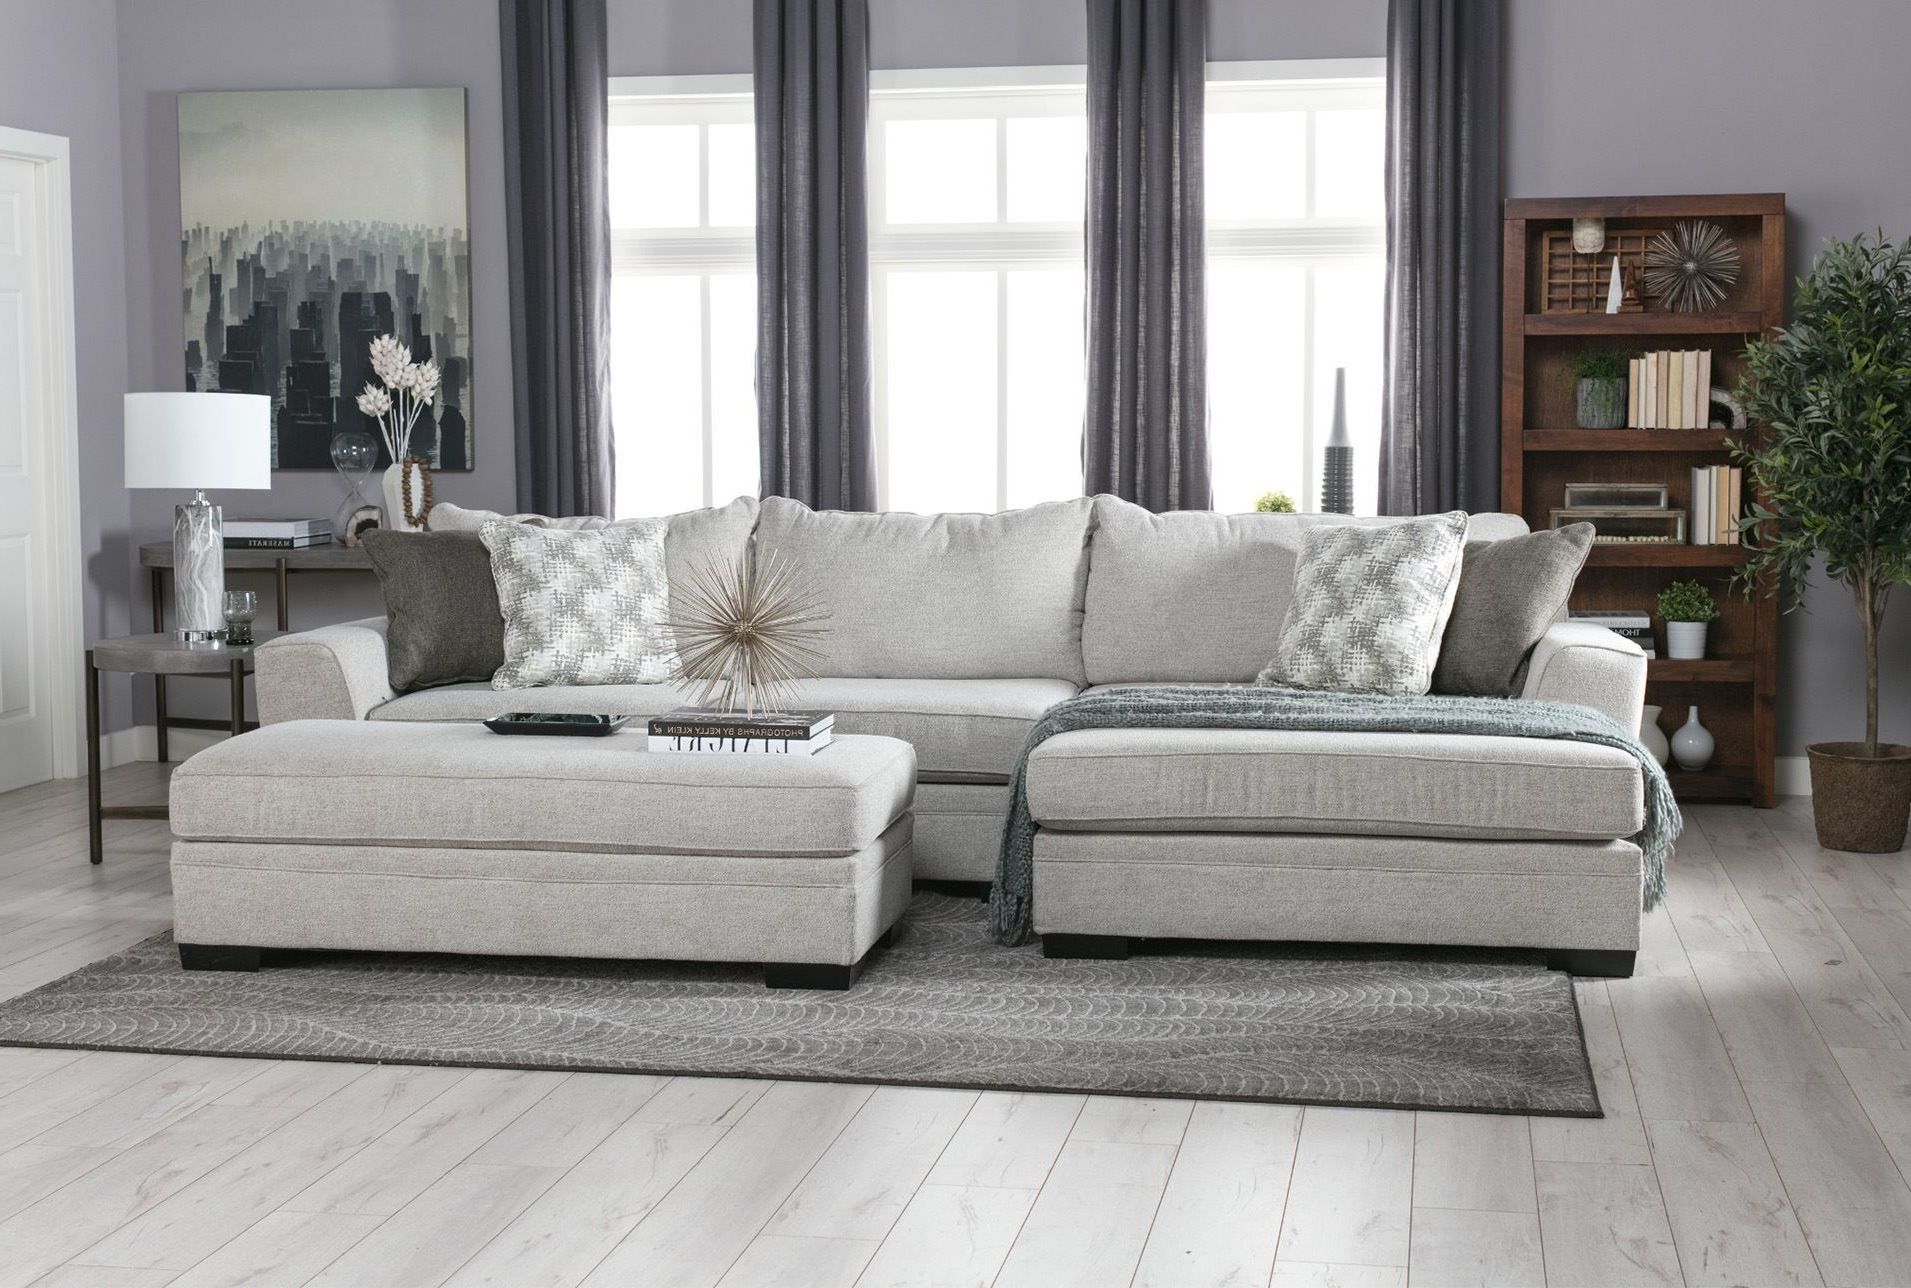 Most Recent Delano 2 Piece Sectionals With Laf Oversized Chaise Regarding Delano 2 Piece Sectional W/laf Oversized Chaise In (View 2 of 20)